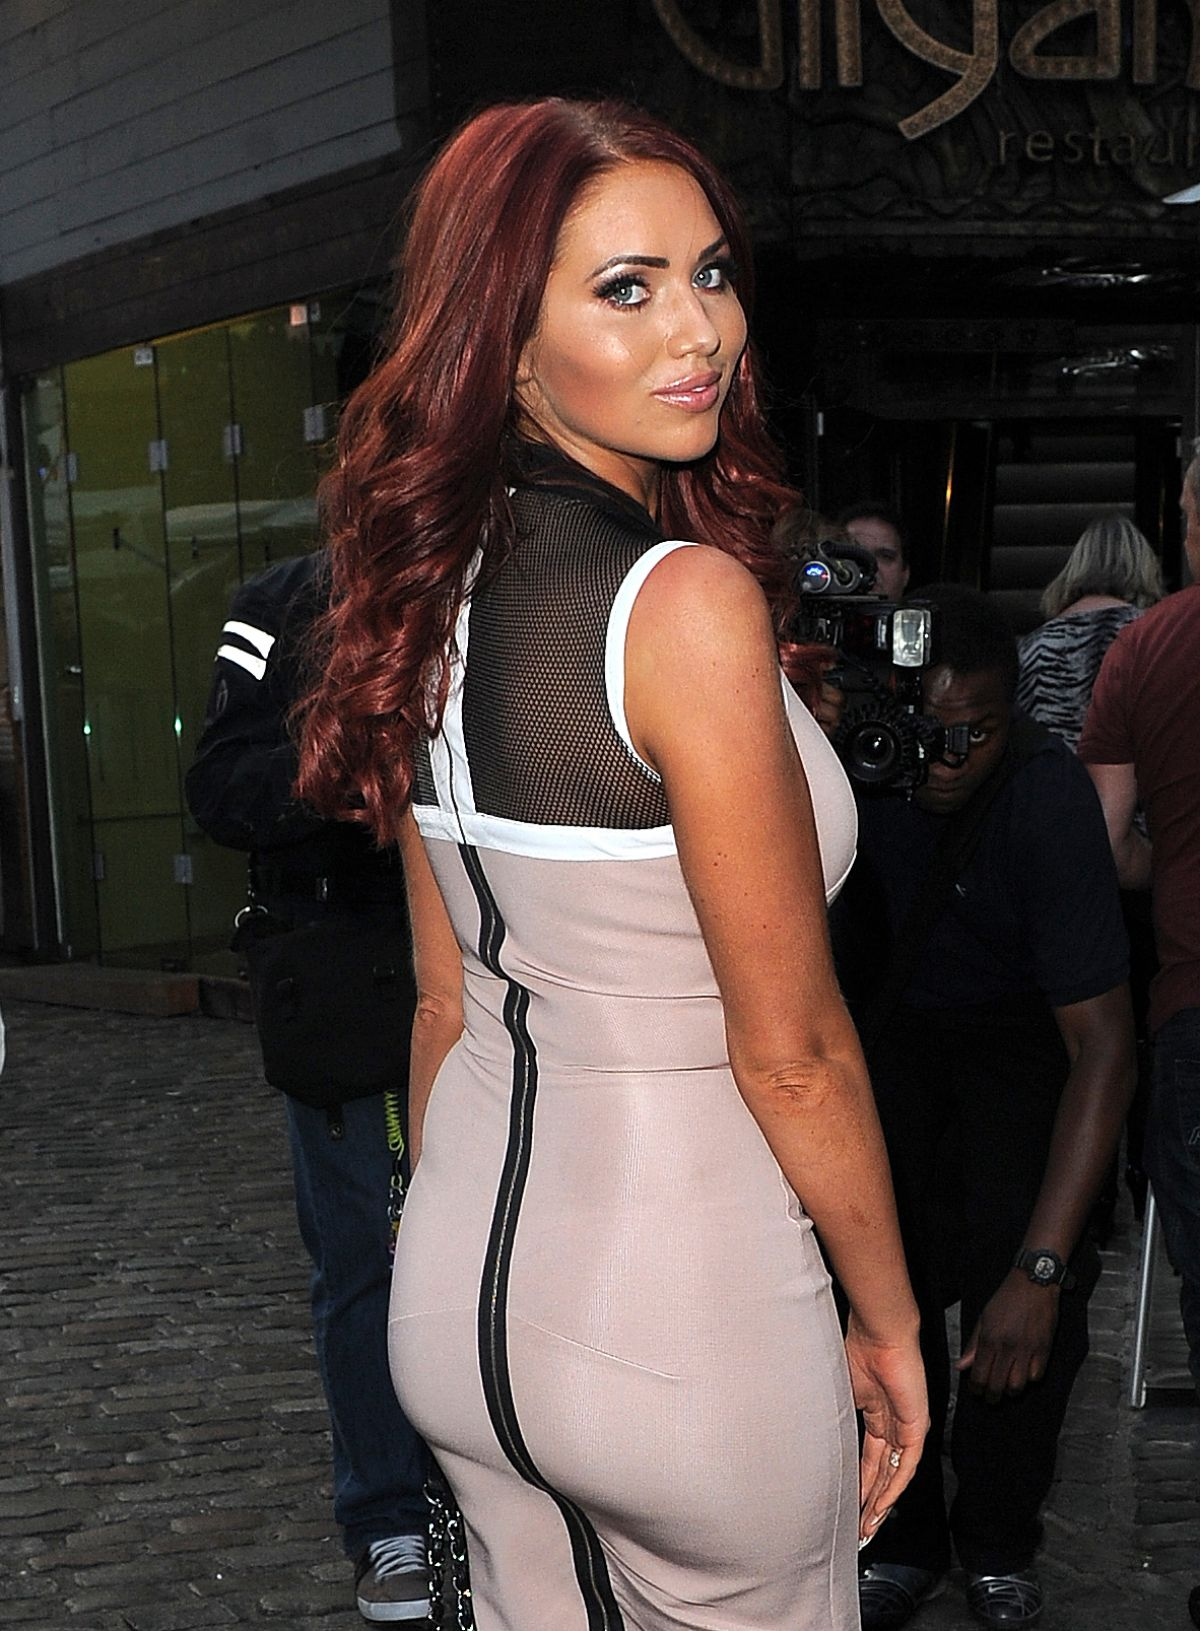 AMY CHILDS at Prive Blue Champagne Party in London